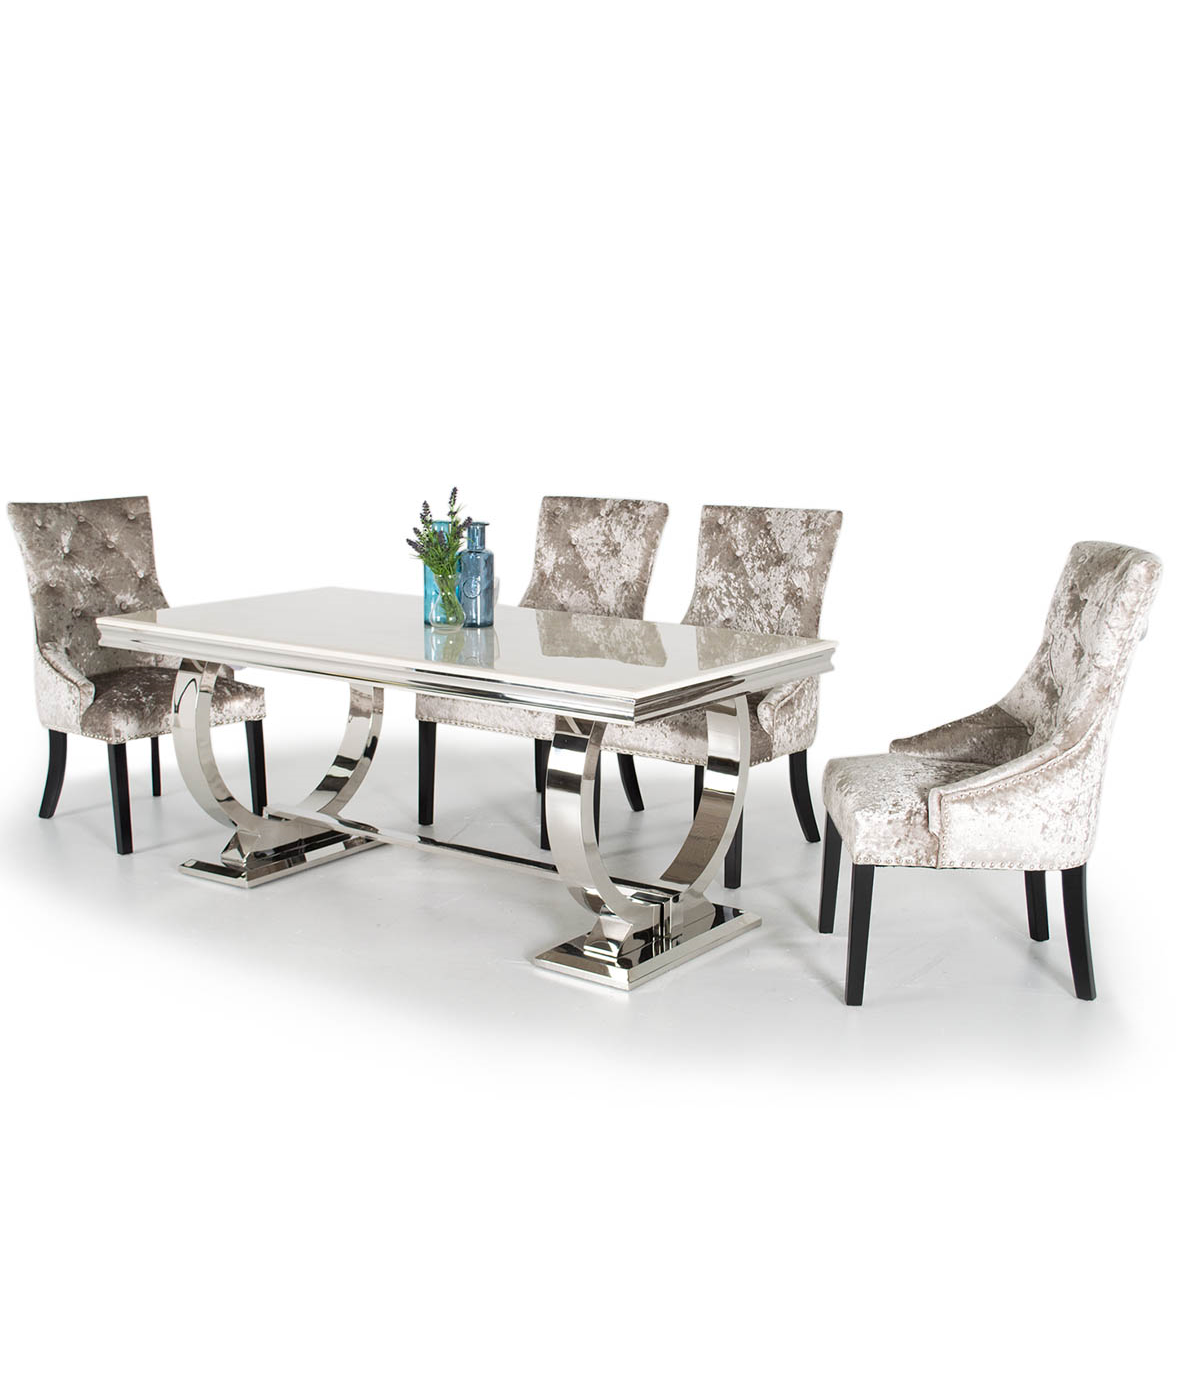 Venice Marble Dining Table With 6 Chairs 3 Colours Dining Table Marble White Glass Dining Table Marble Top Dining Table